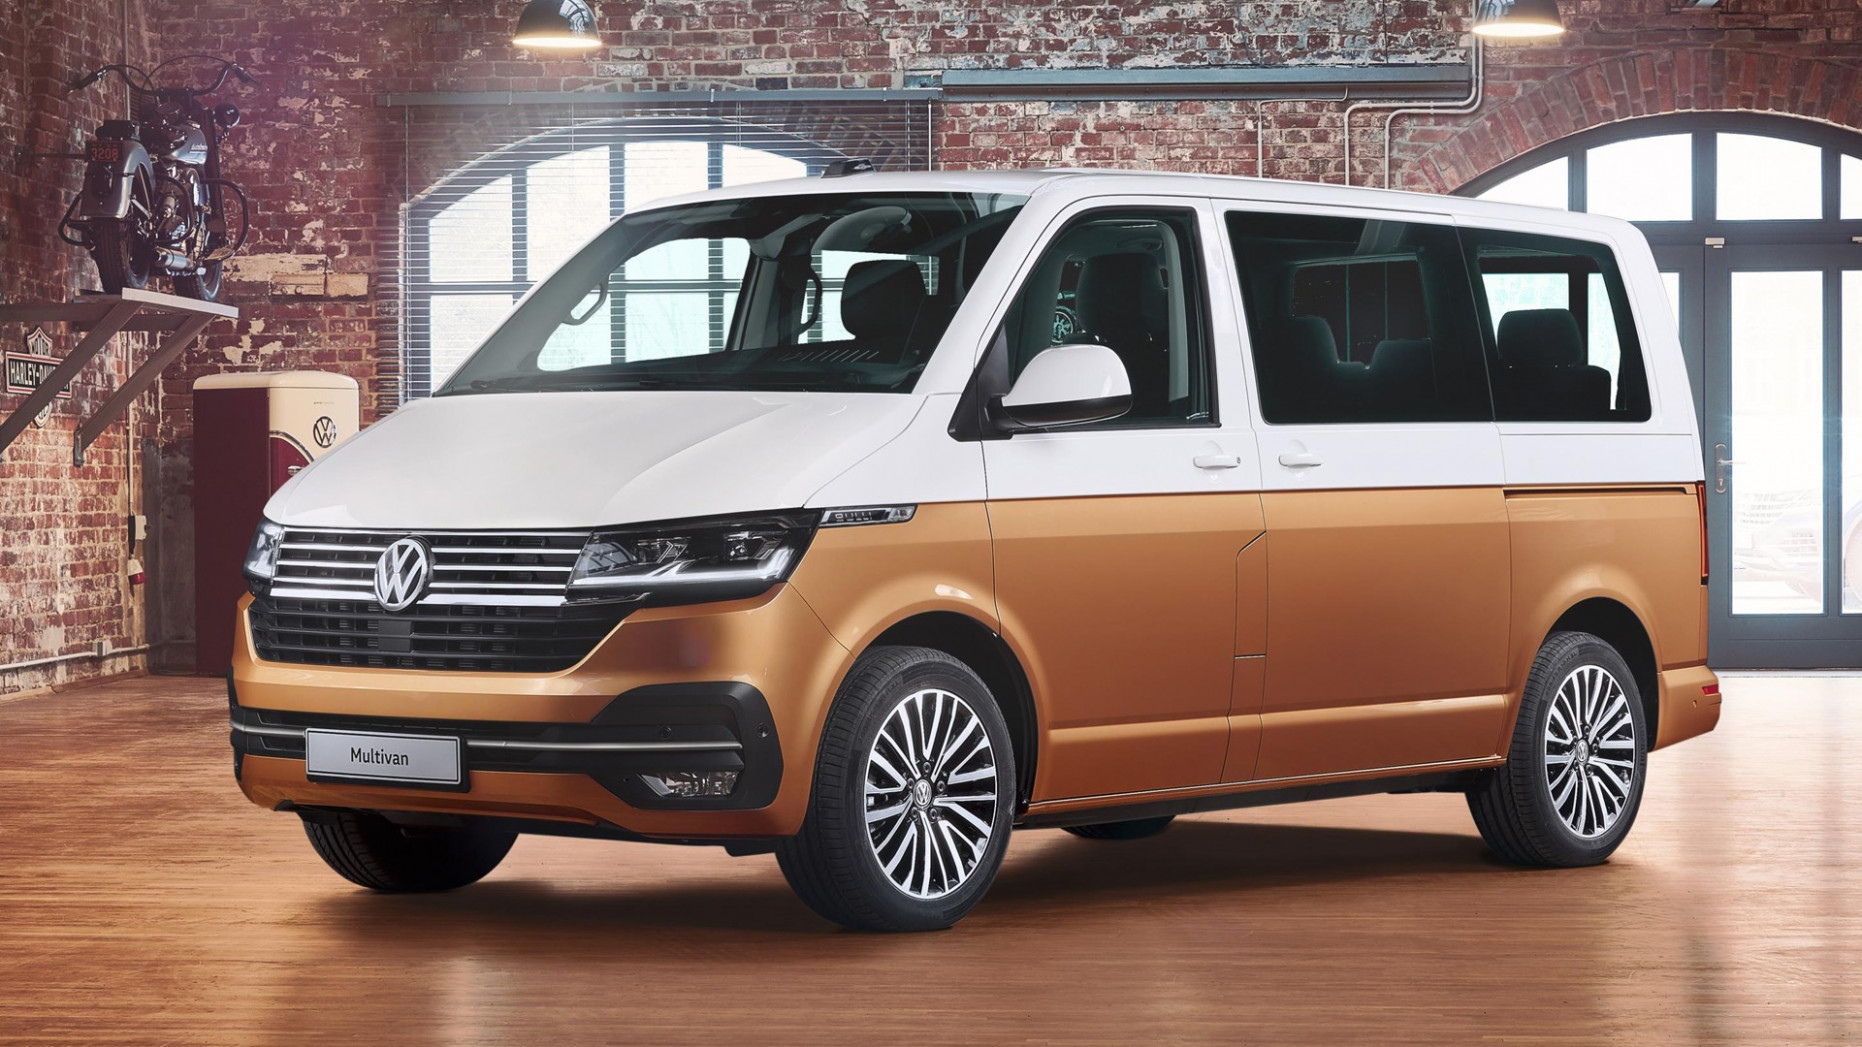 7 Volkswagen Transporter (T7.7) is the Bus we won't see